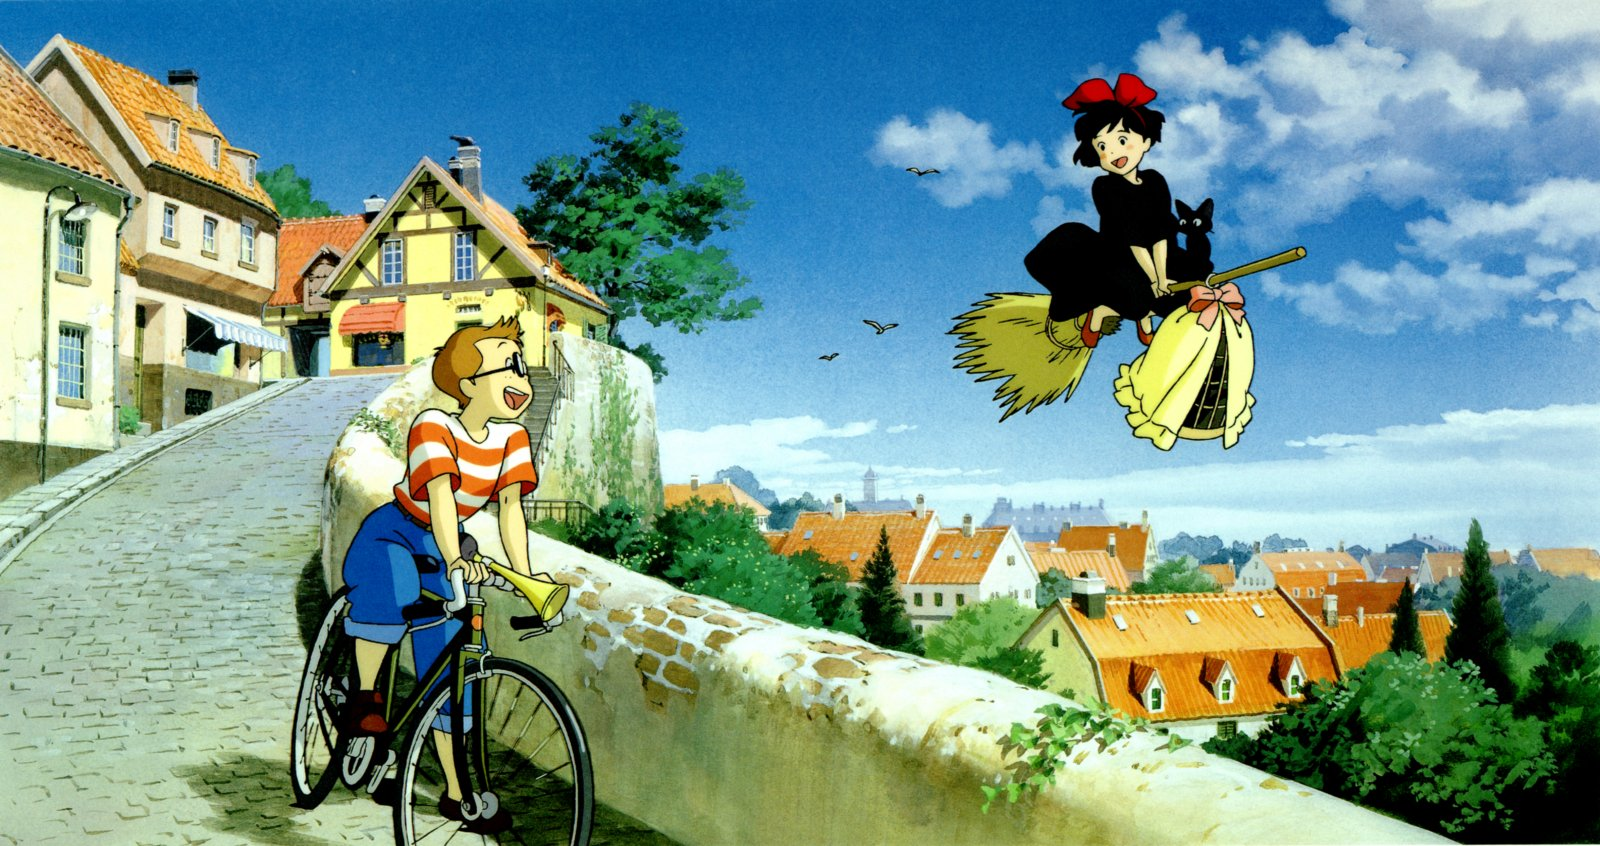 Studio Ghibli Desktop Backgrounds Studio ghibli wallpaper 1600x846